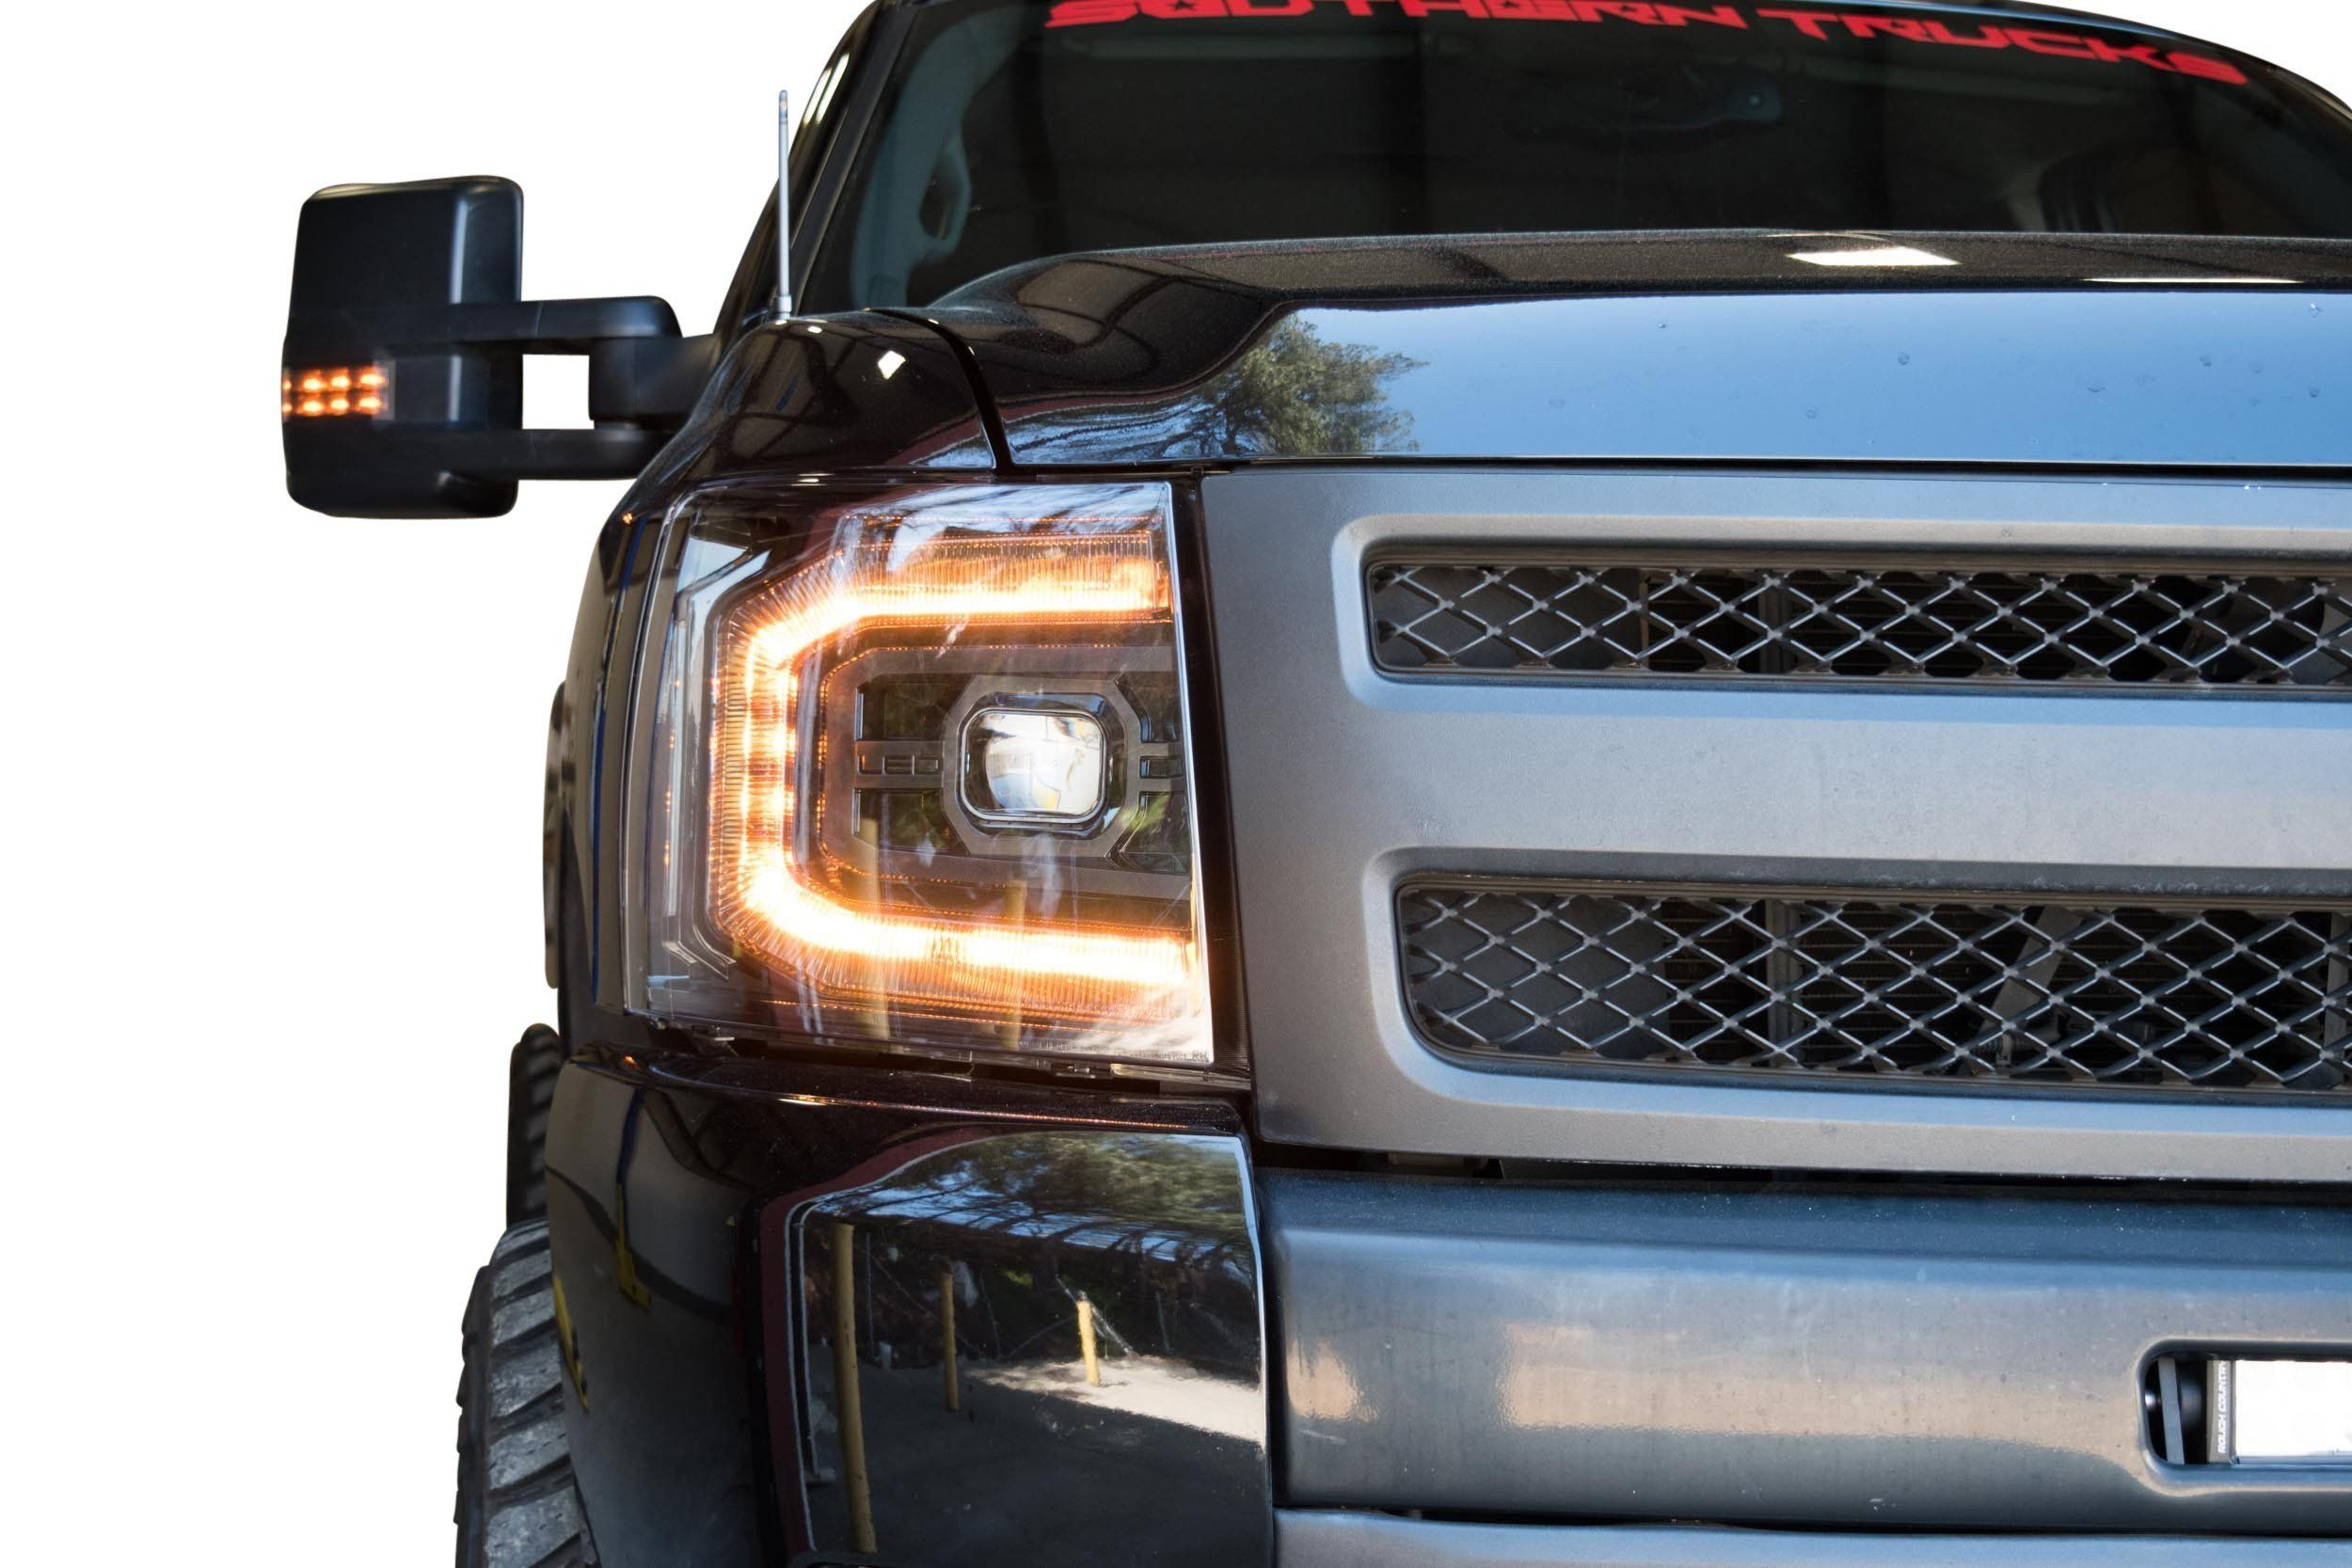 2007 2013 Chevrolet Silverado Xb Led Projector Headlights Complete Led Housings From The Retrofit Source In 2020 Chevrolet Silverado Led Headlights Chevrolet